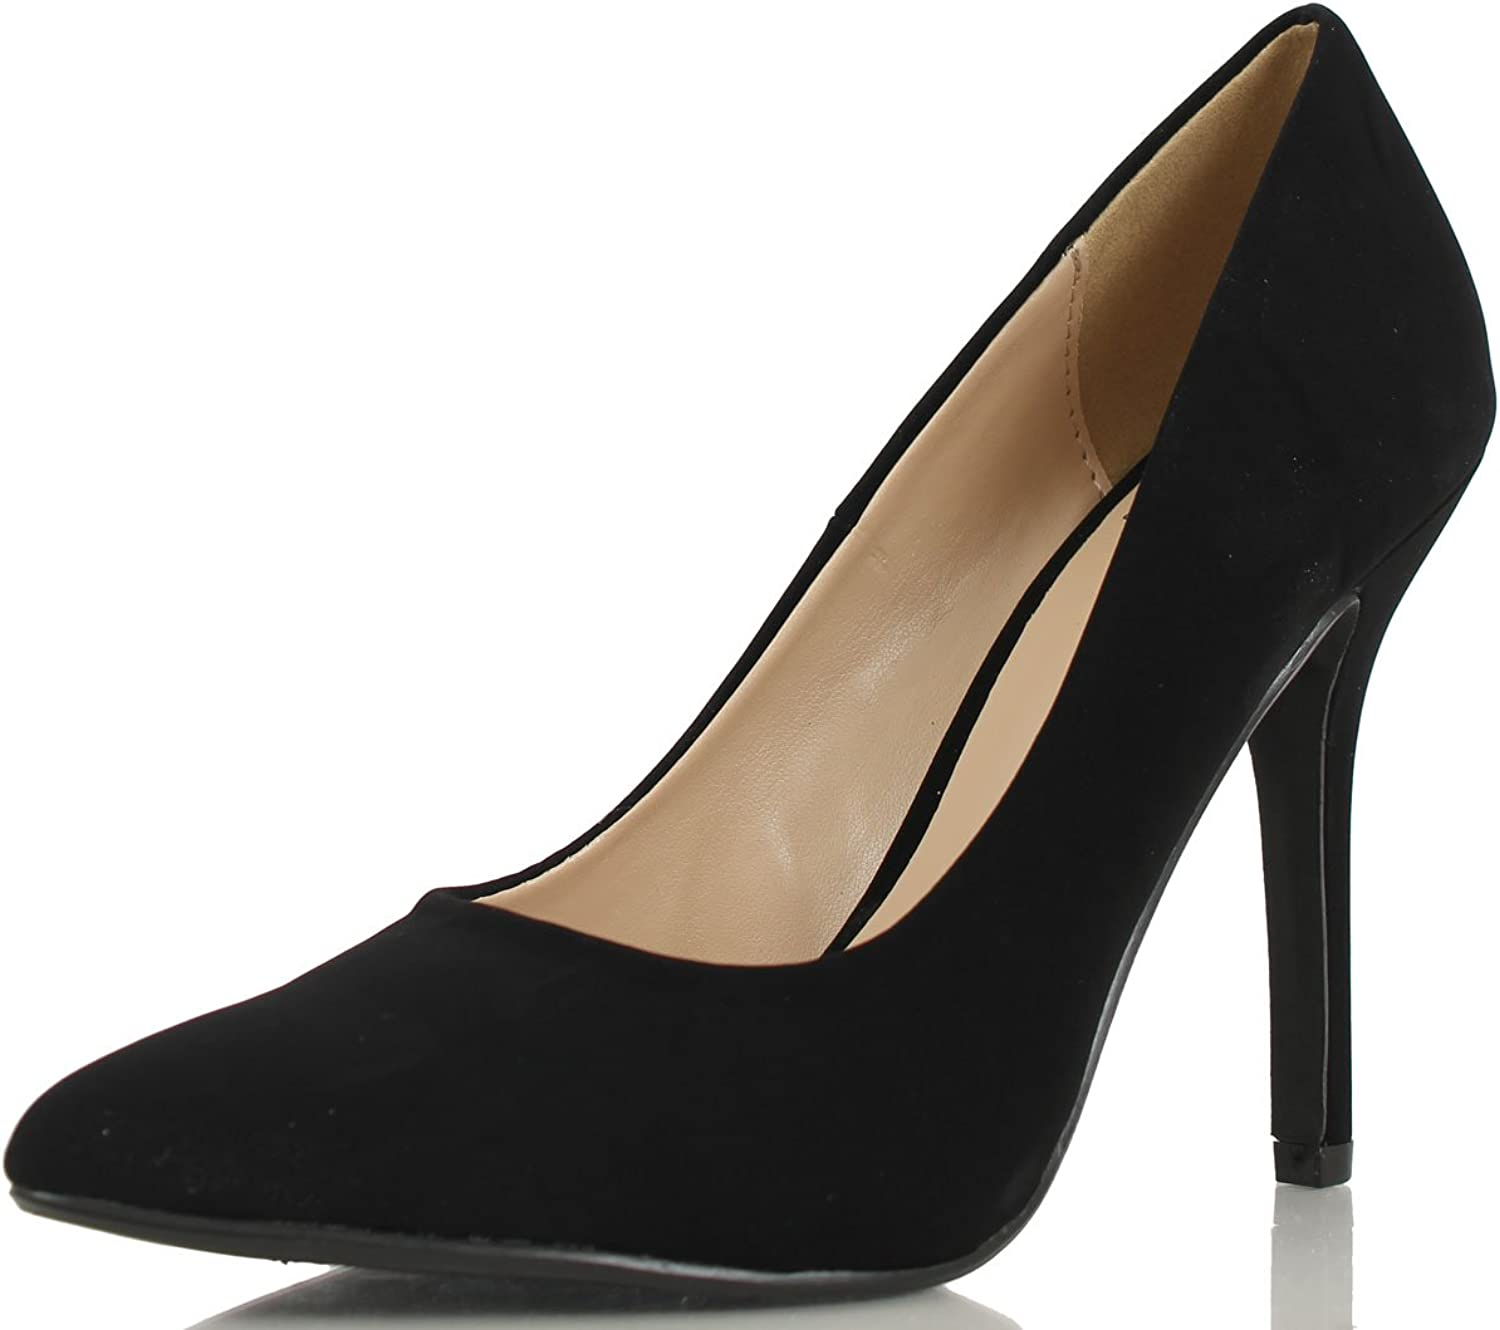 Delicious Women's Cindy Pointy Toe Velvet Single Sole Classic Pump,5.5 B(M) US,Black Nubuck